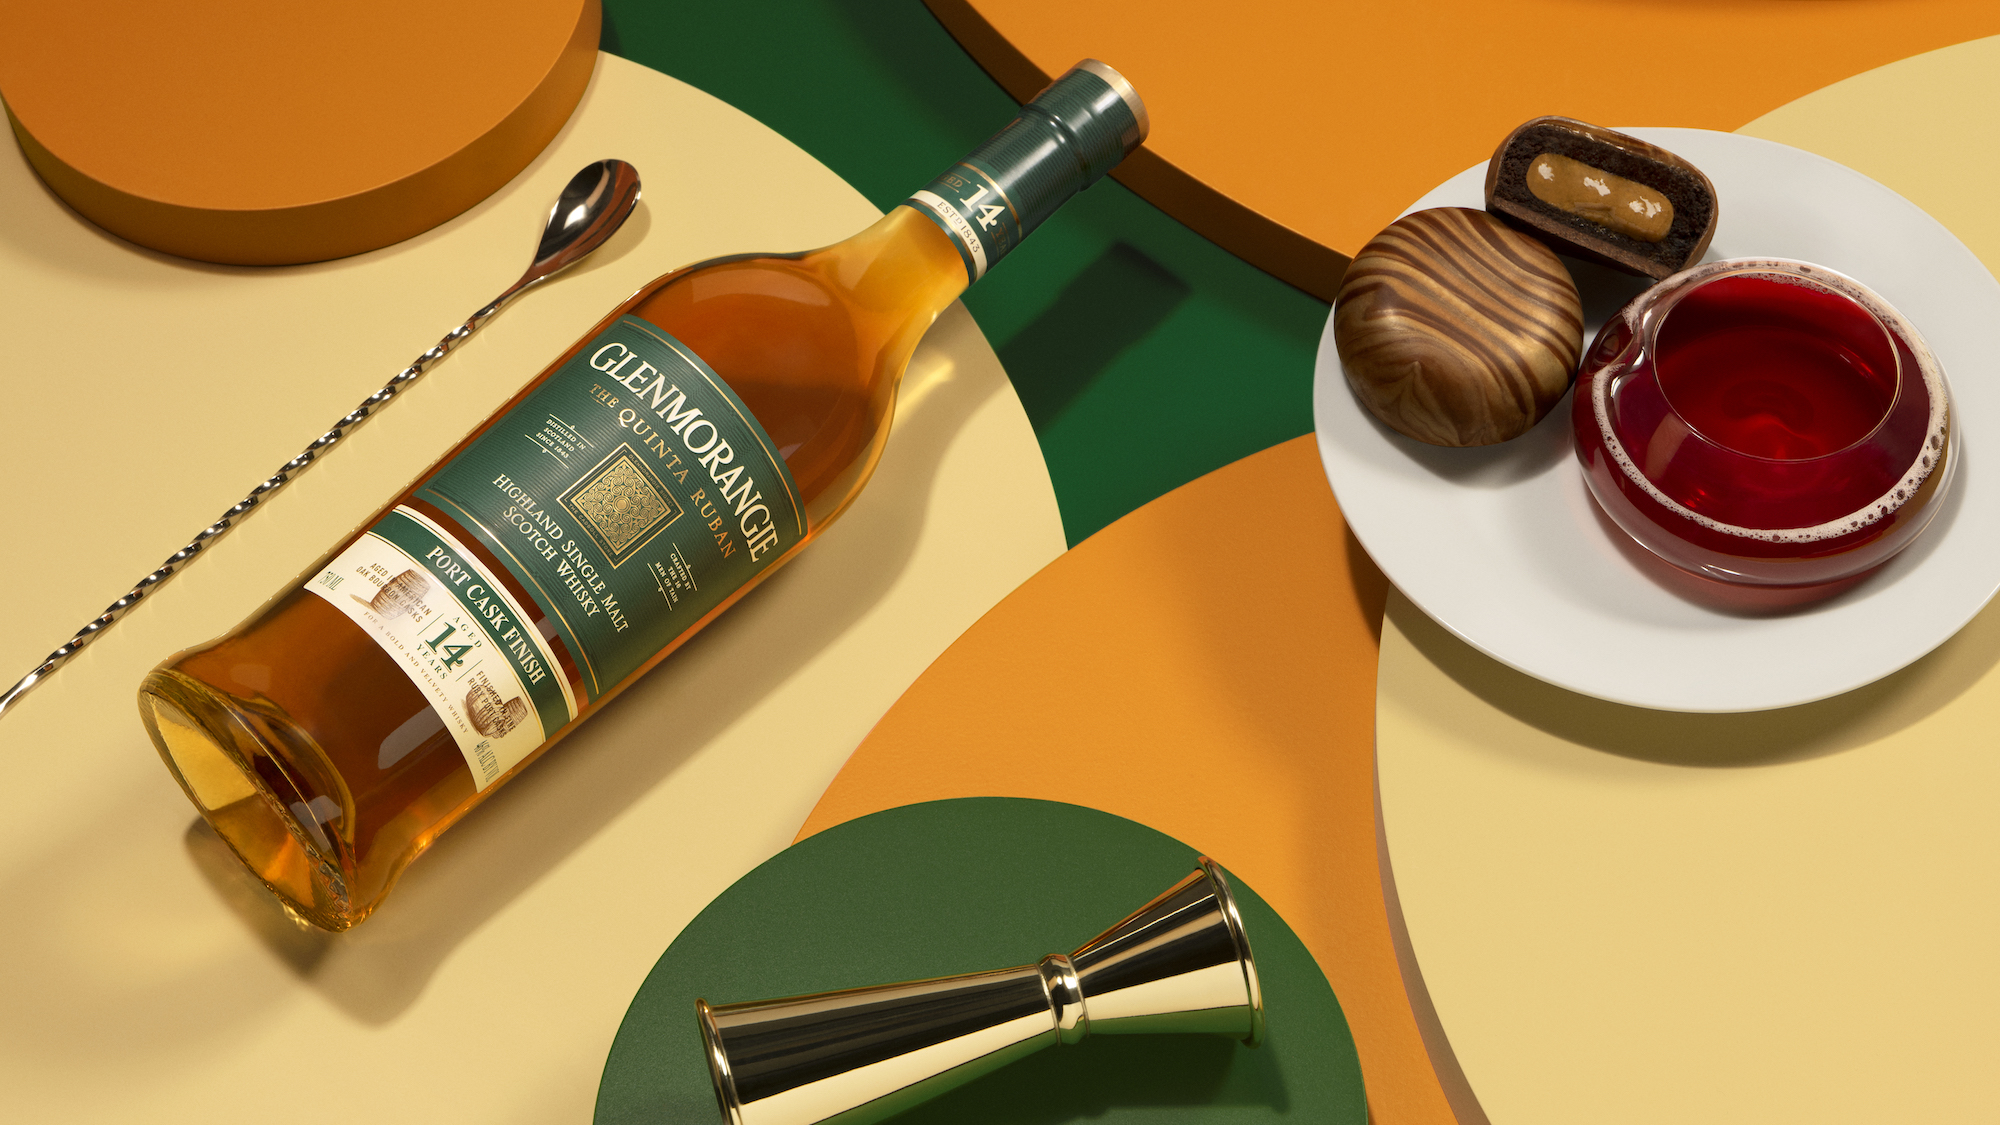 Dominique Ansel for Glenmorangie's A Tale of Cake Quinta Ruban